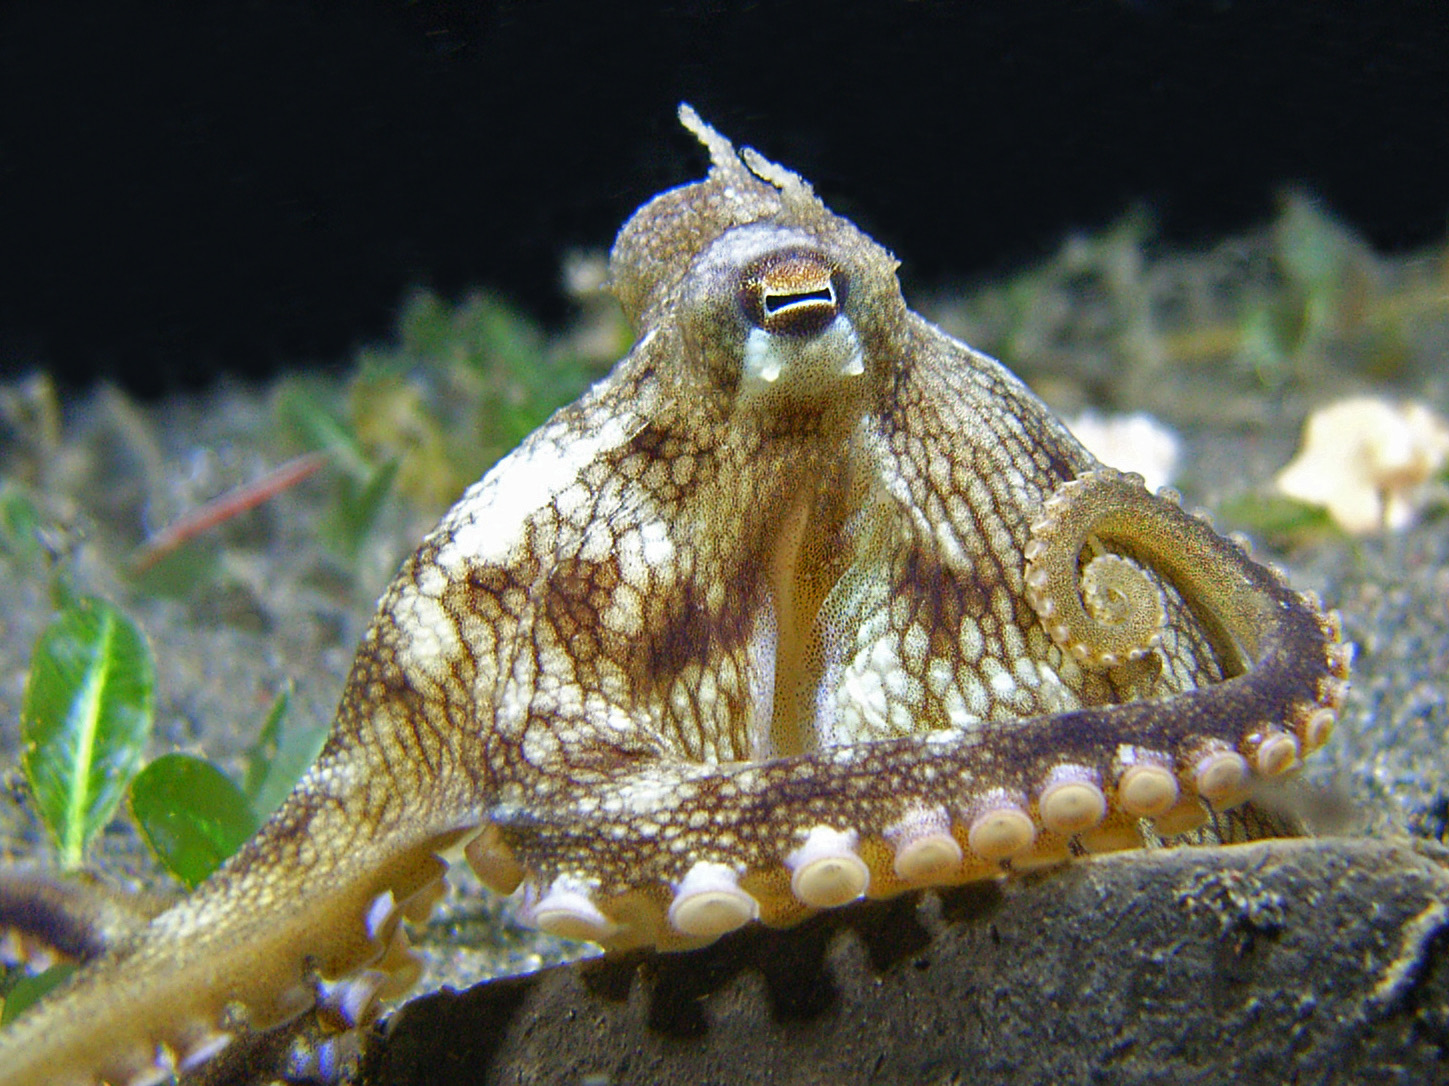 coconut octopus closeup.jpg